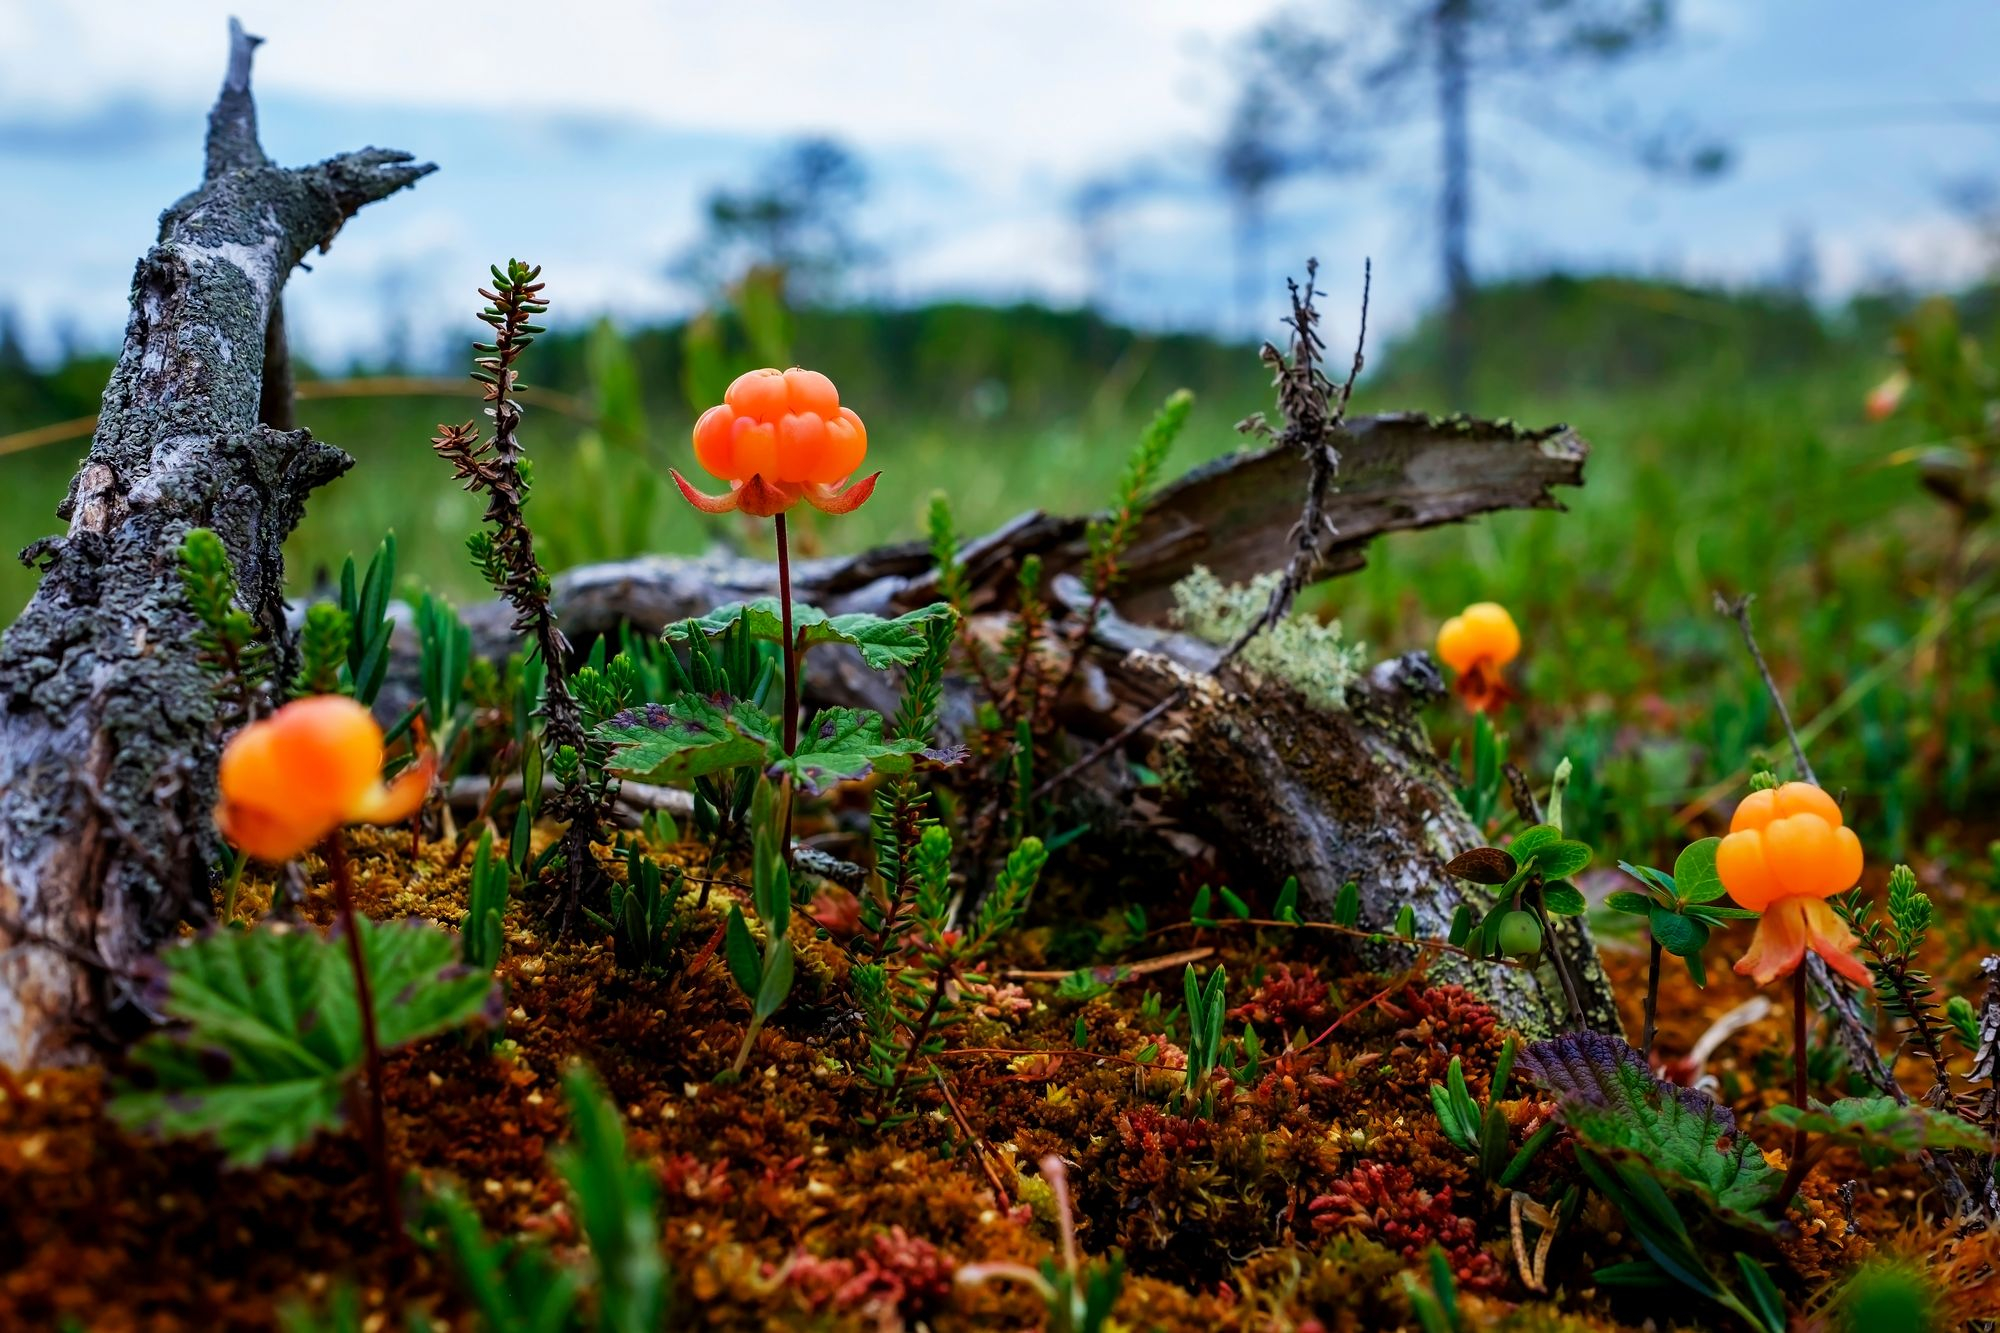 Ripe cloudberry grows on a swamp in Russia. Healthy food in wood Kuva: OM-arkisto